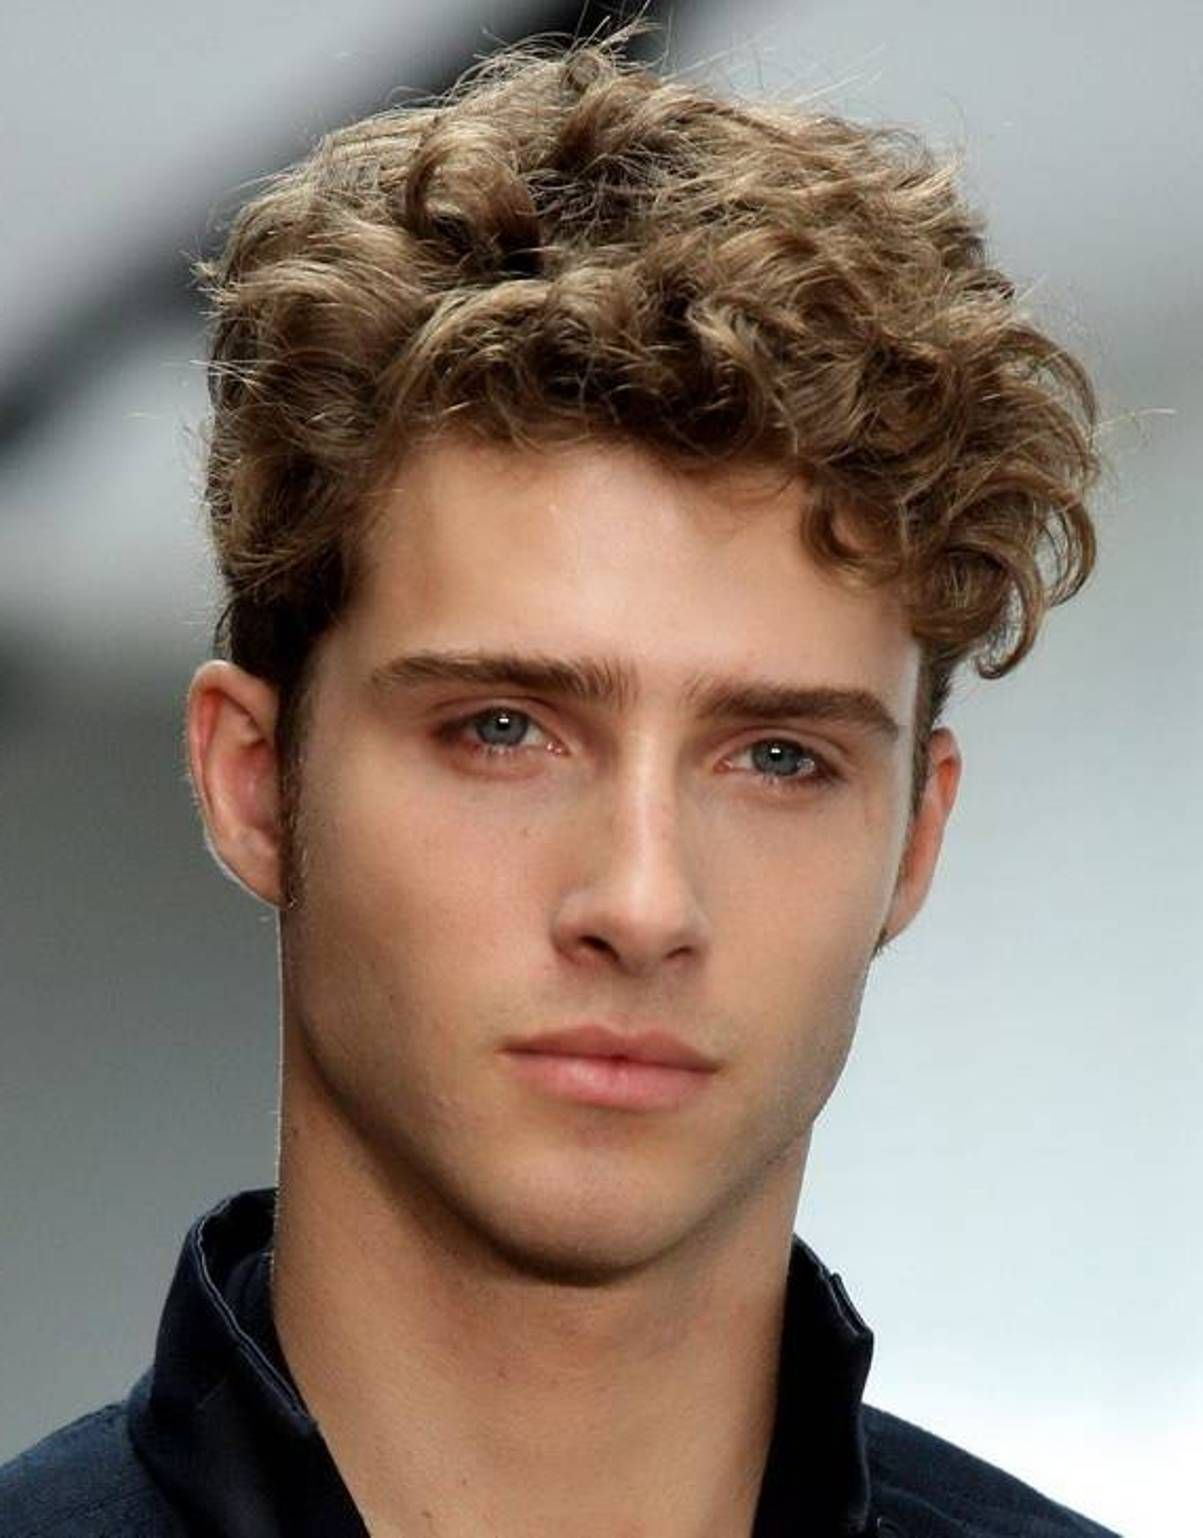 Curly Hairstyles Men Delectable Size Matters 60's Hair Trends That Rocked The Nation  Hair Styles